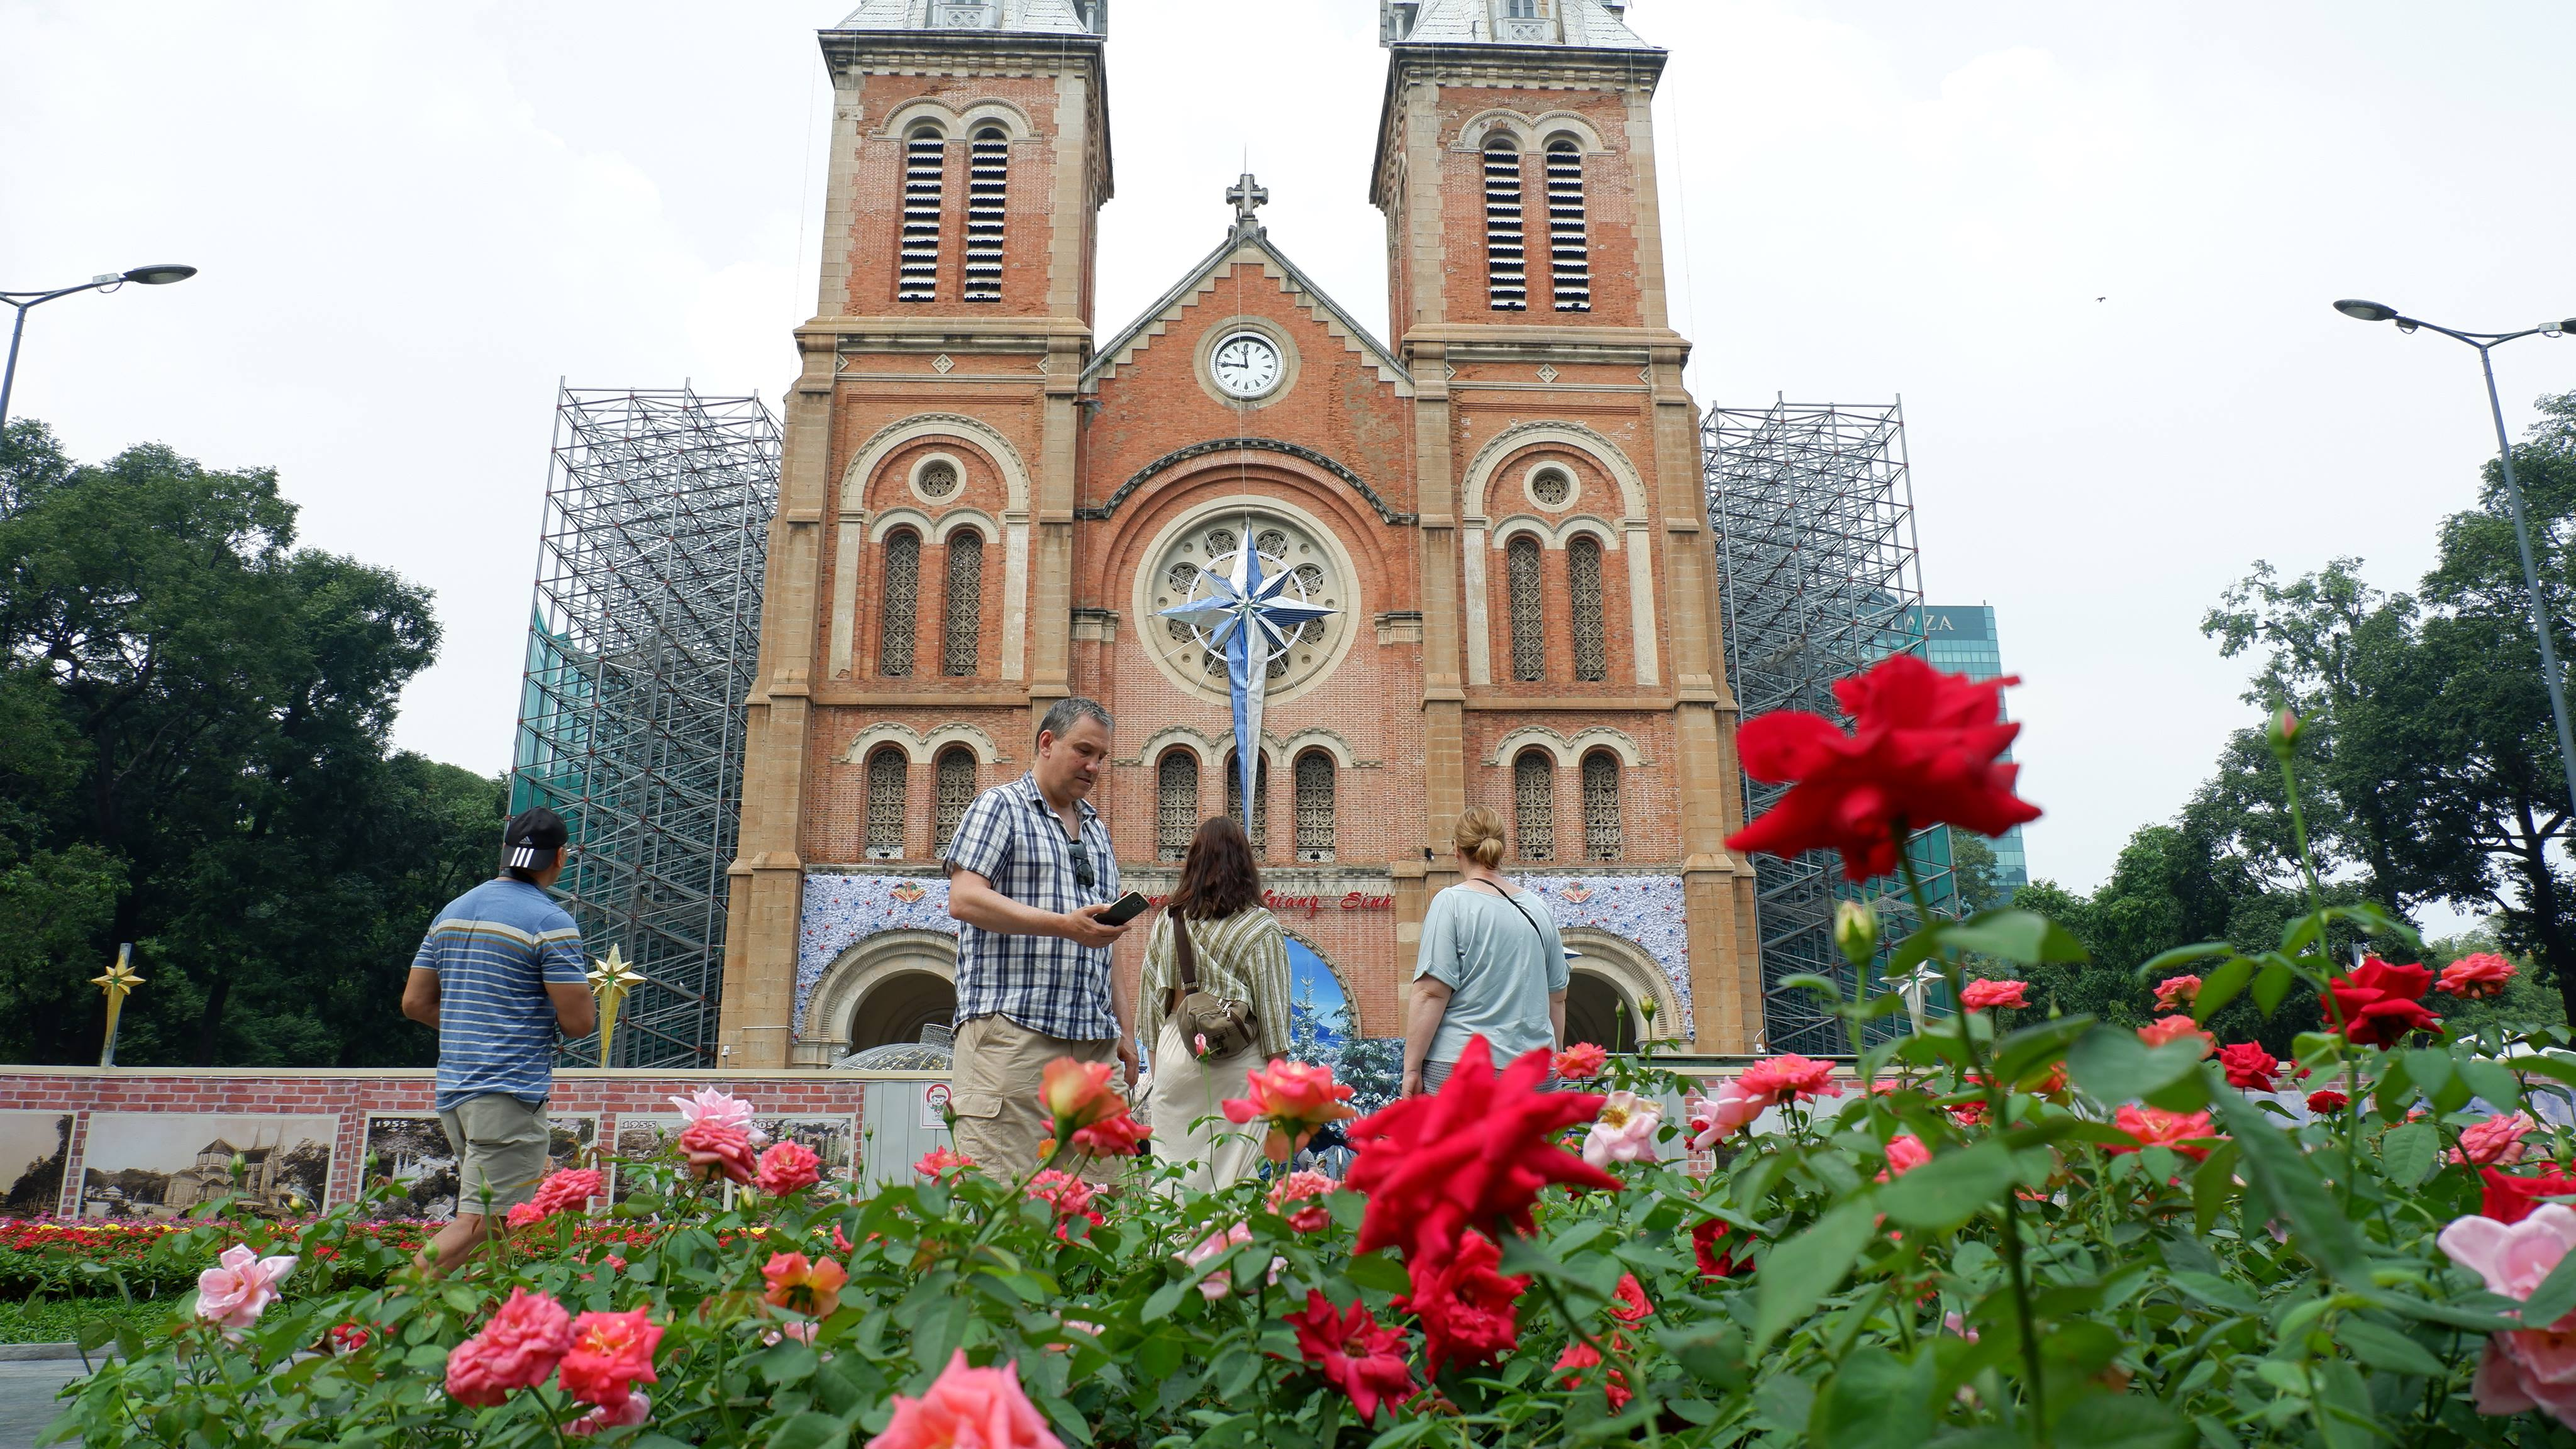 notre-dame-cathedral-ho-chi-minh (3)